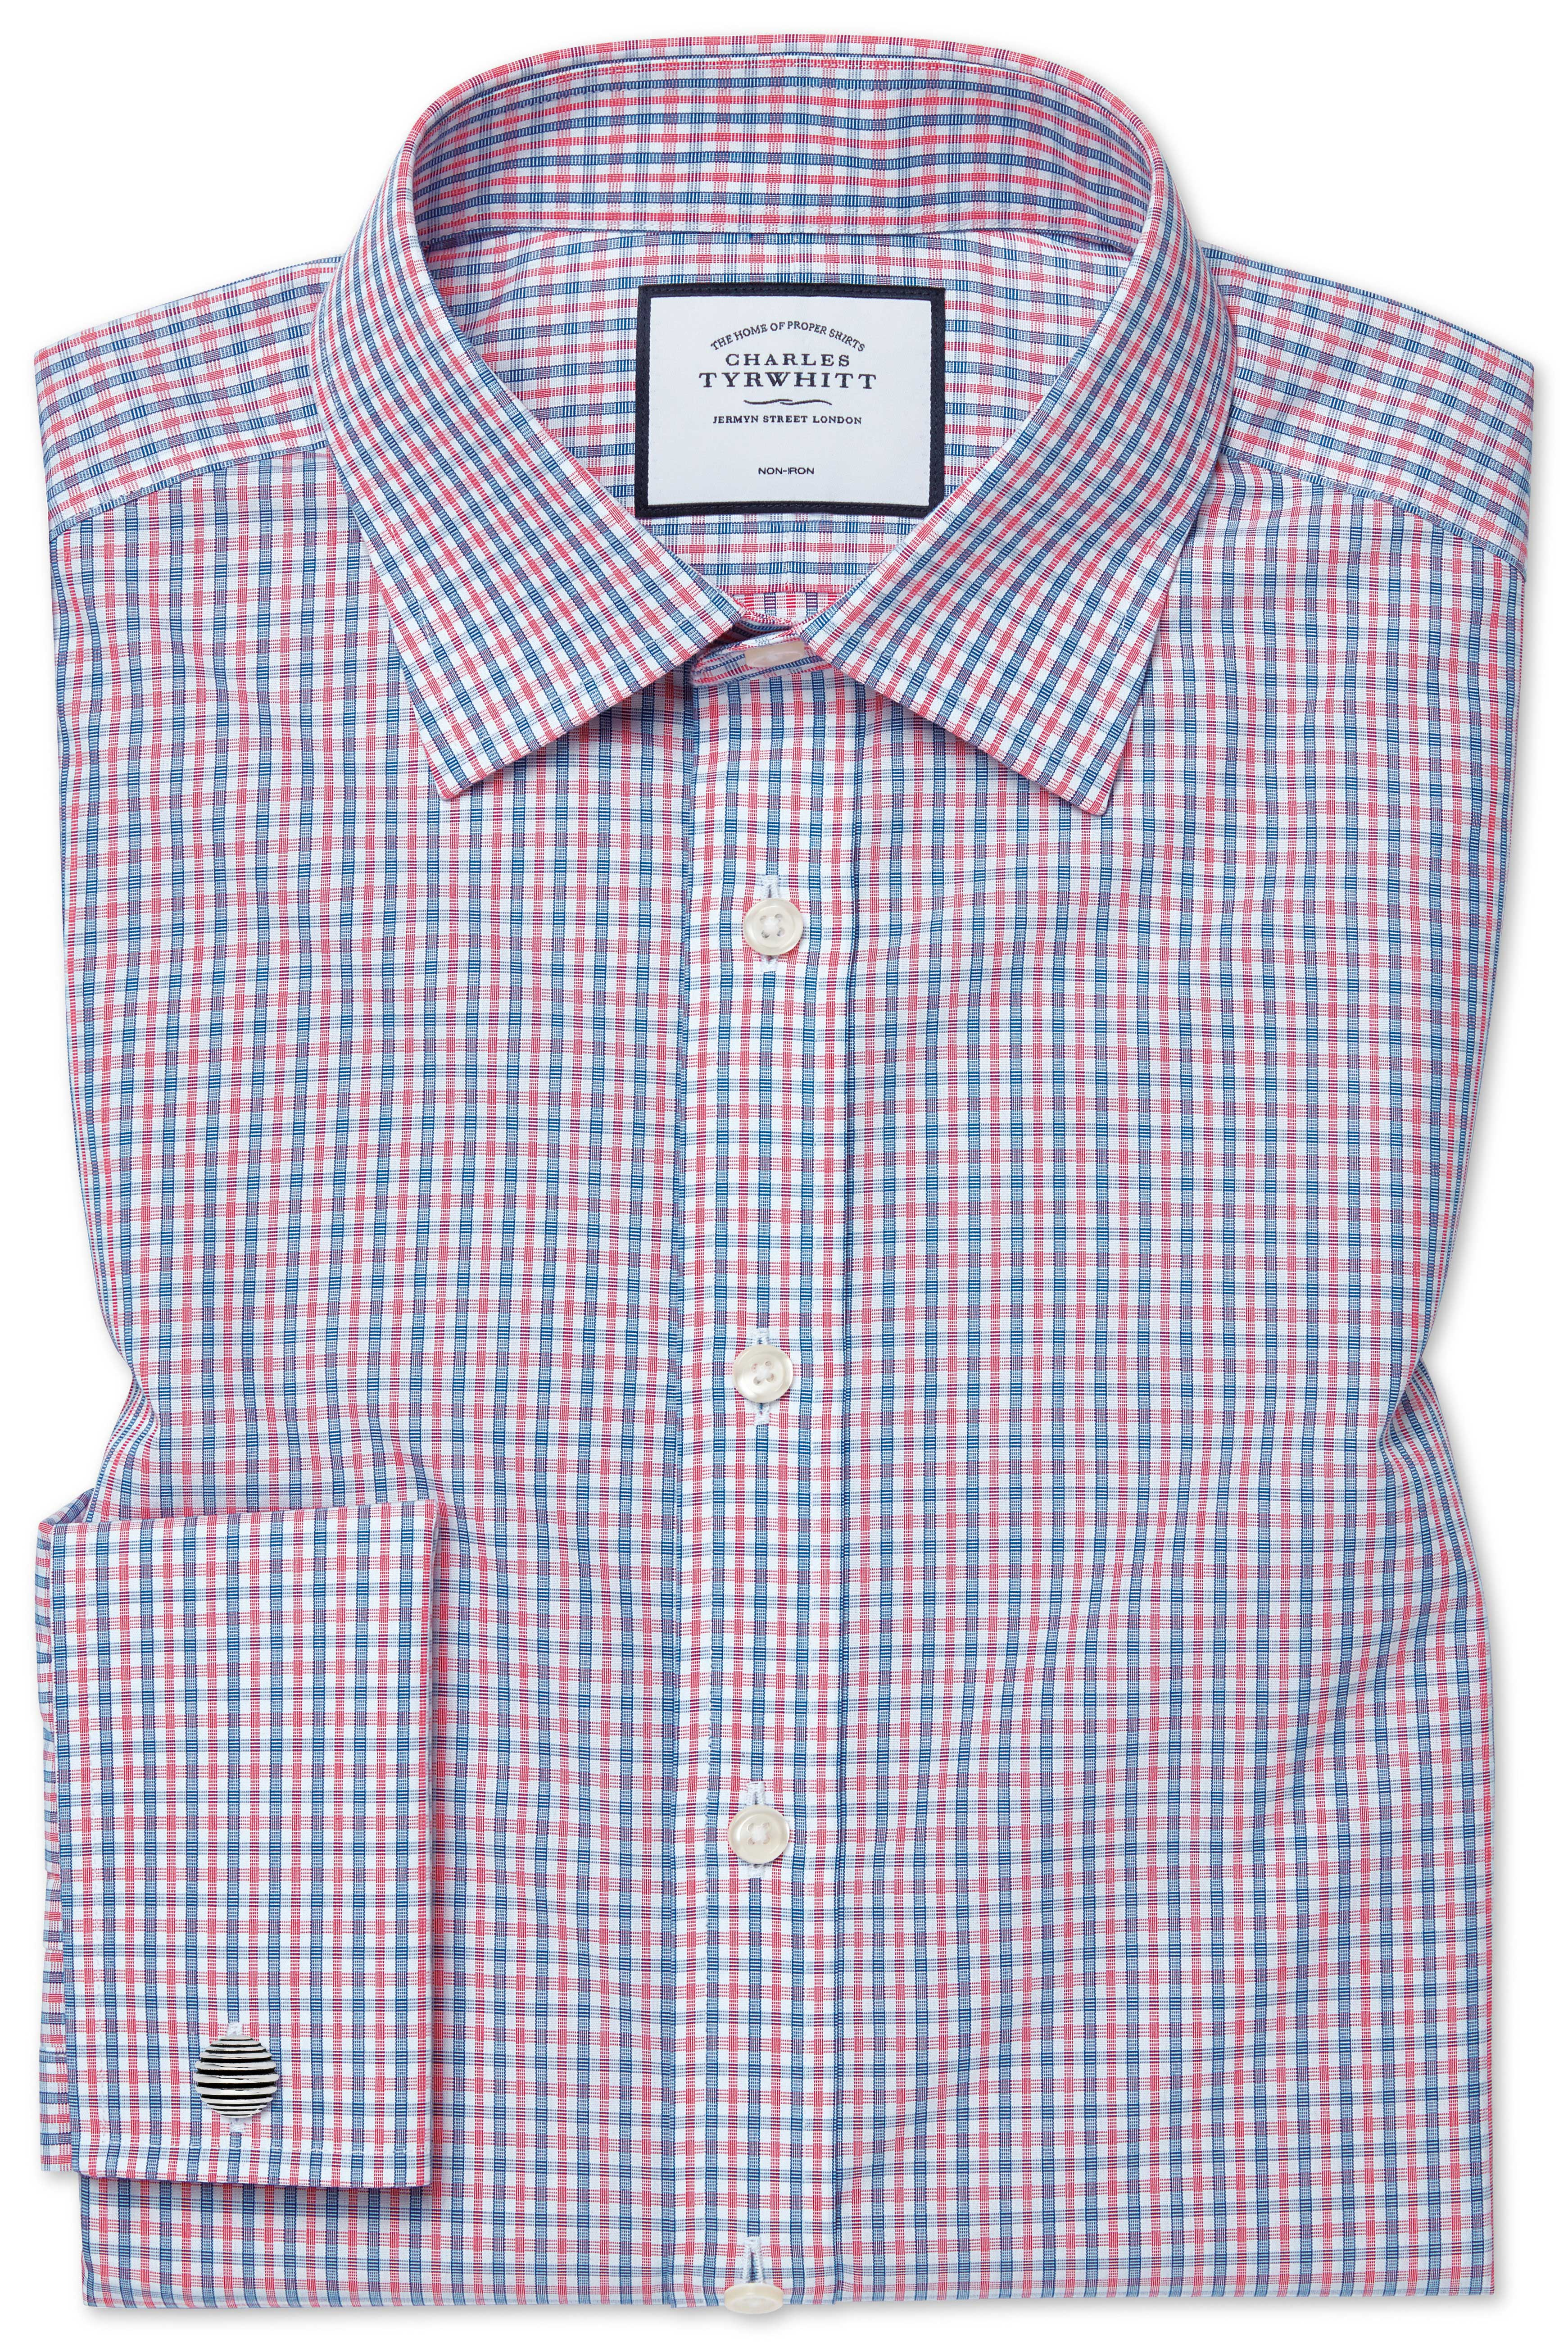 Extra Slim Fit Cutaway Non-Iron Poplin Blue and Red Cotton Formal Shirt Single Cuff Size 17/36 by Ch